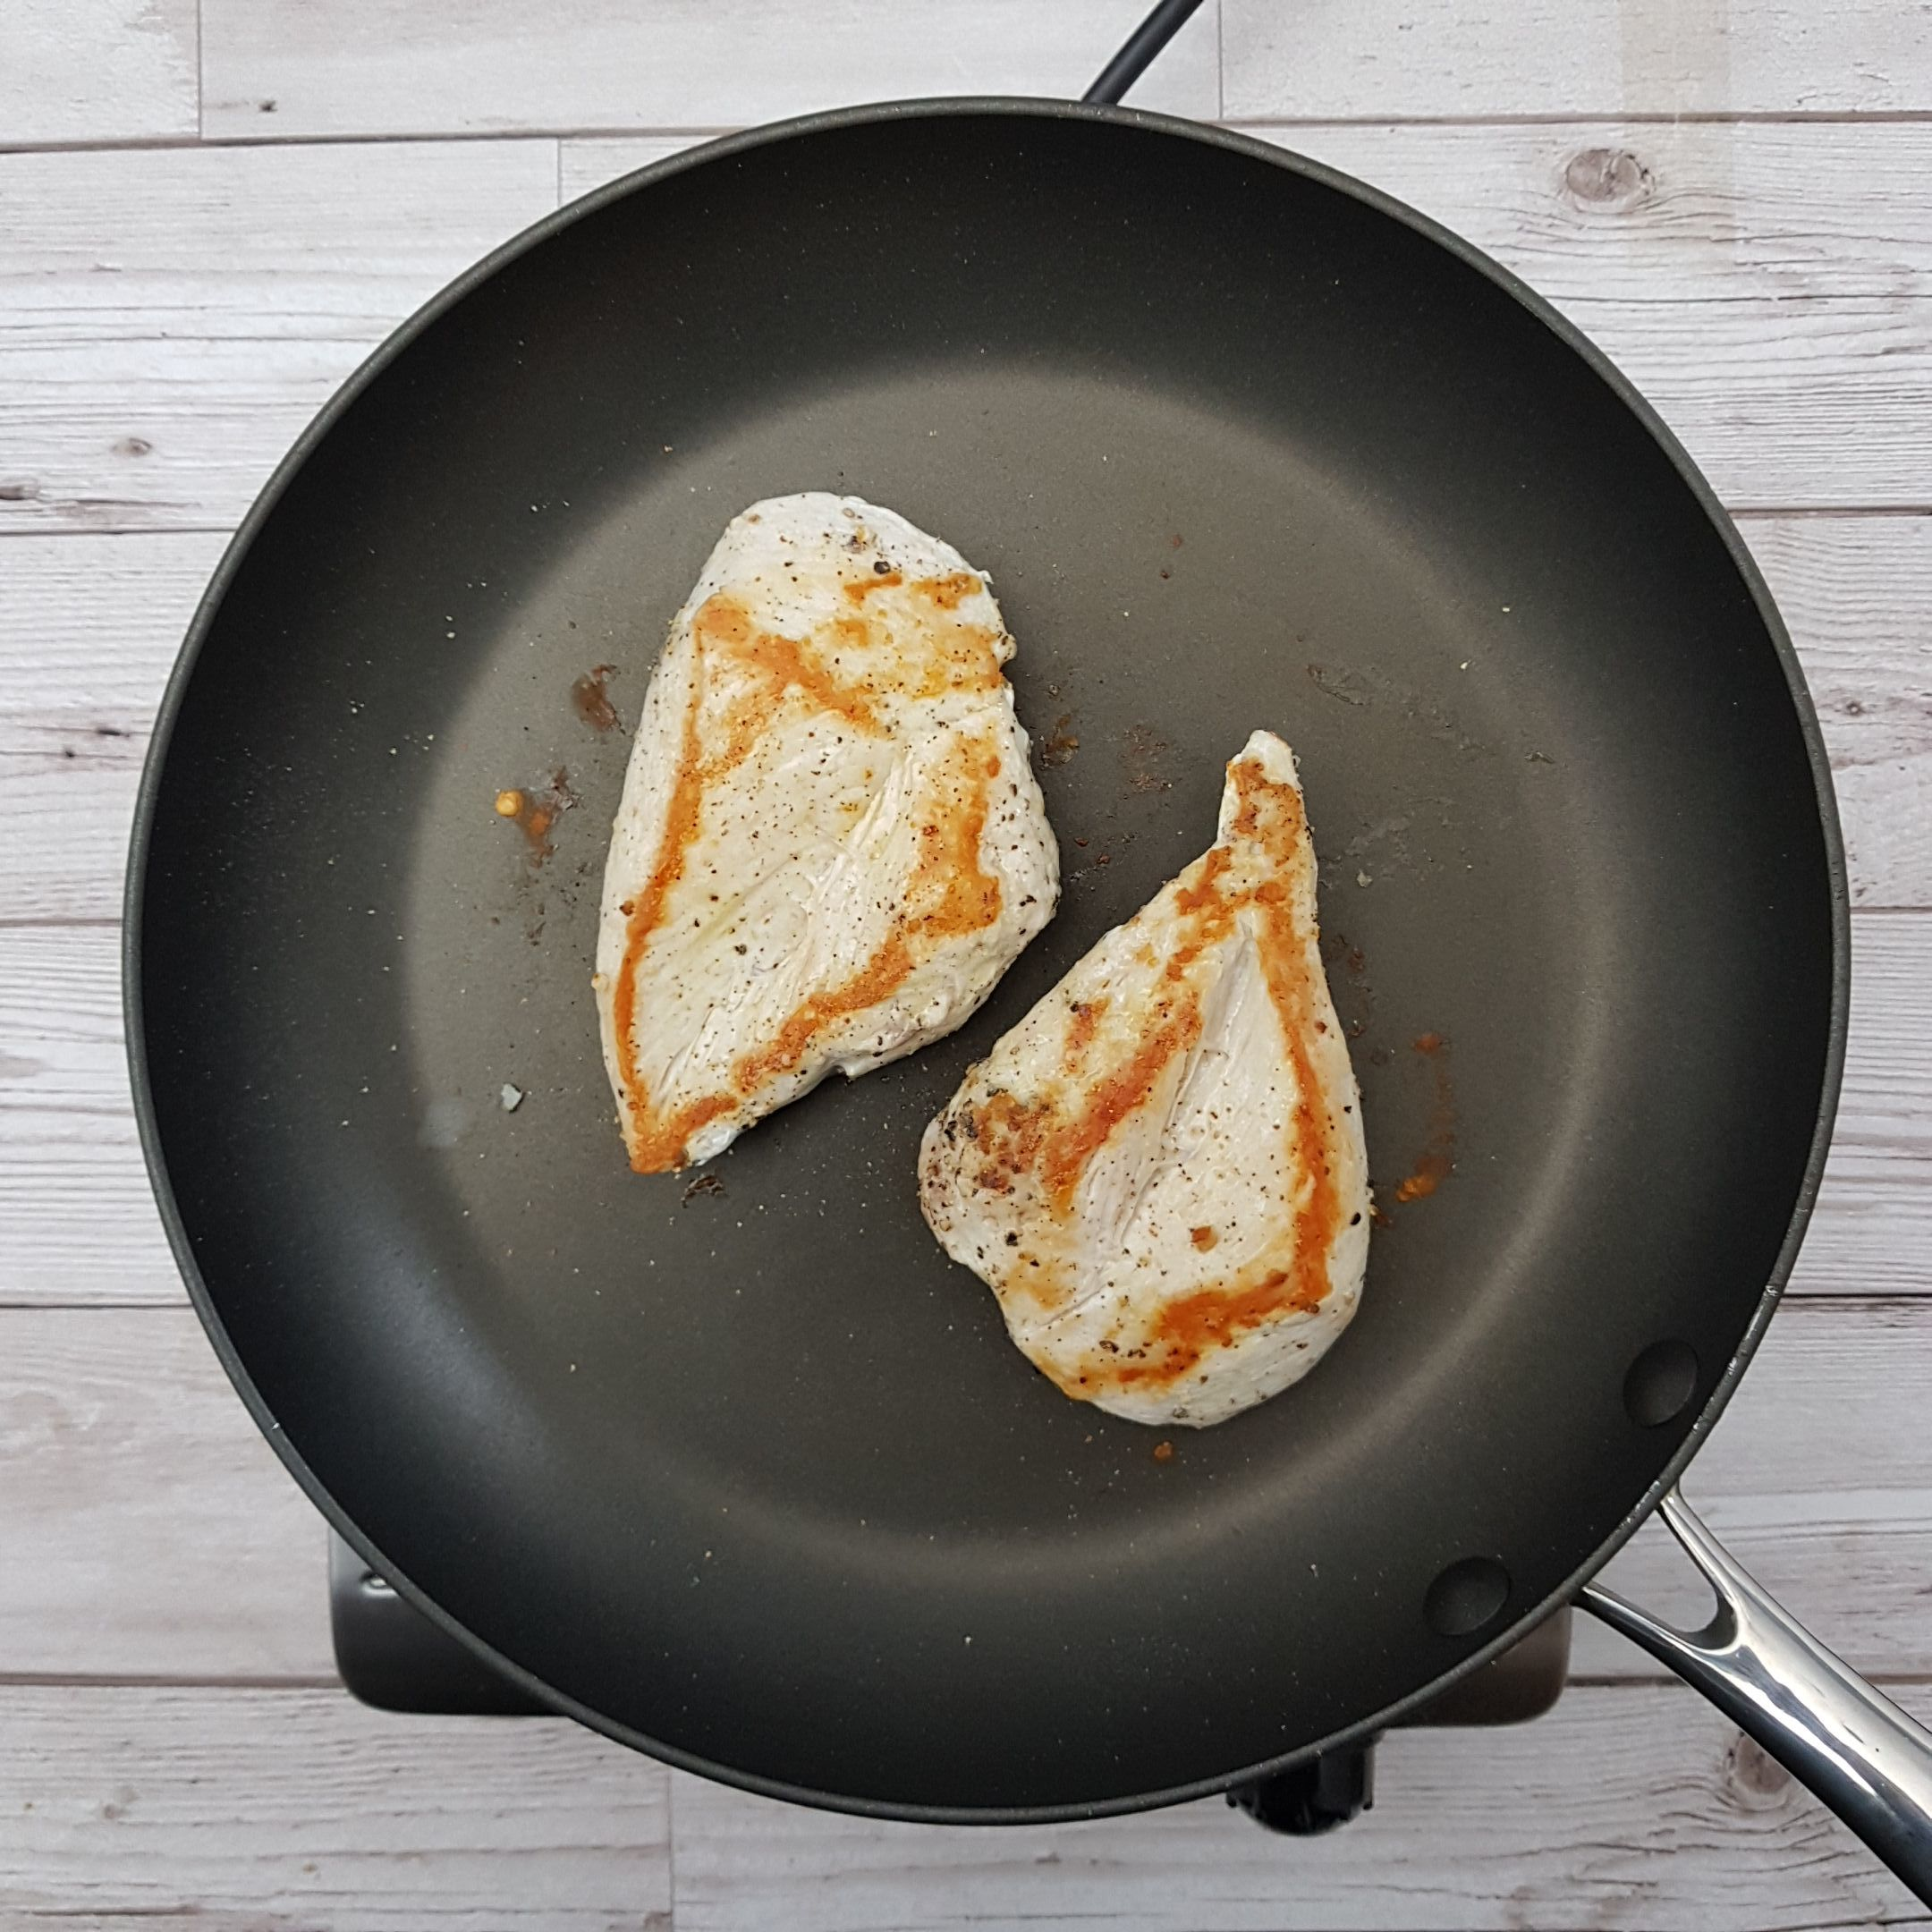 2.	Get a non-stick frying pan hot, and add the breasts. Reduce the heat to medium-low and cook for 6-7 minutes each side until the juices are clear and the meat is white all the way through